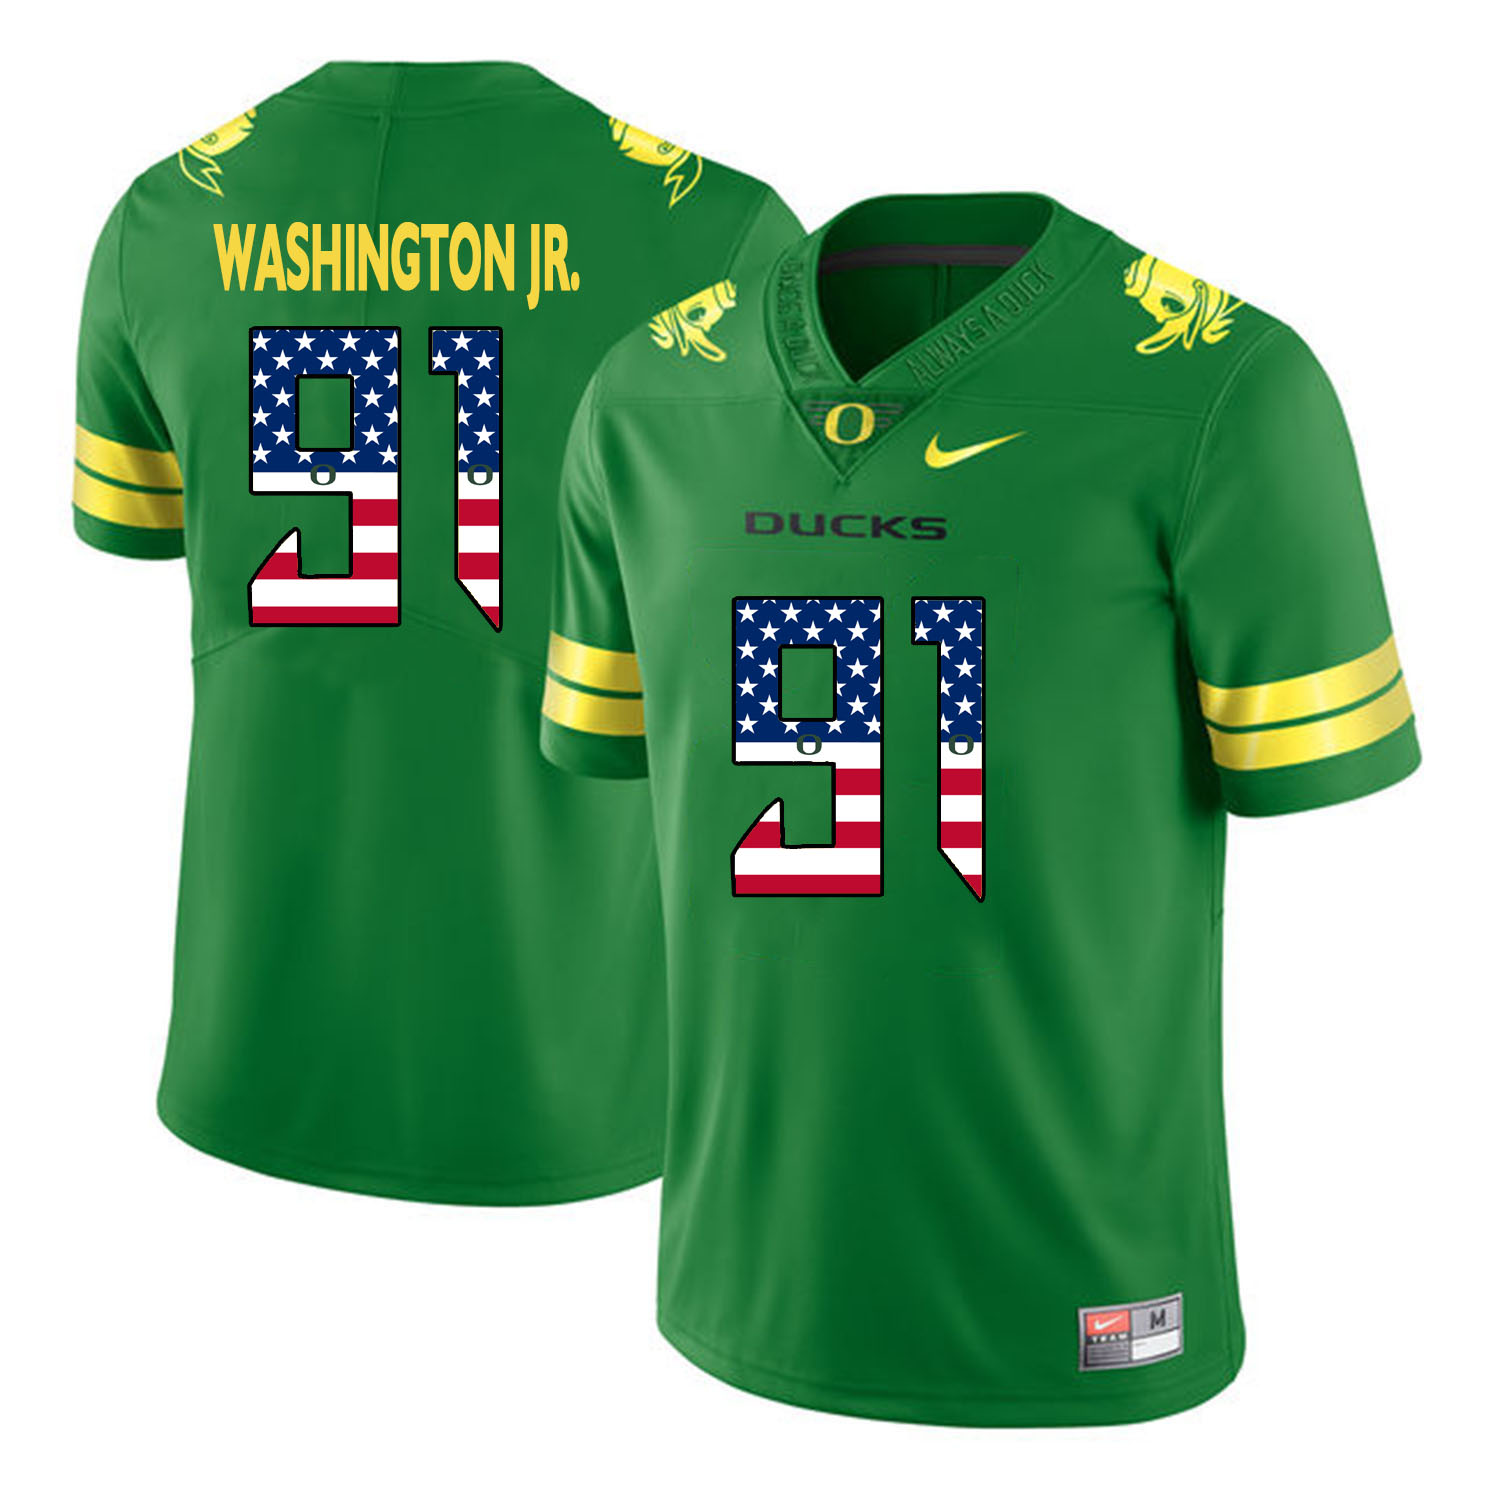 Oregon Ducks 91 Tony Washington Jr. Apple Green USA Flag College Football Jersey